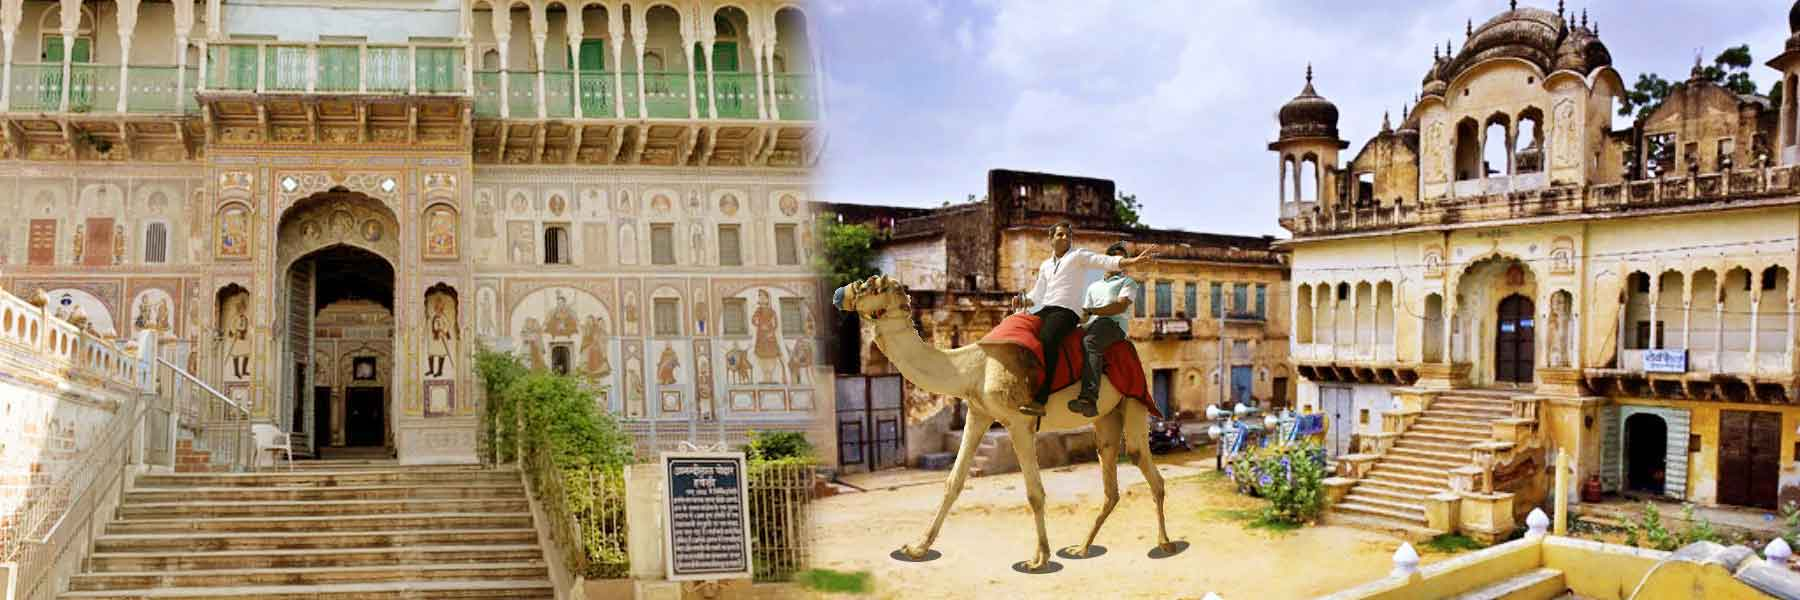 Rajasthan Shekhawati Tour Packages